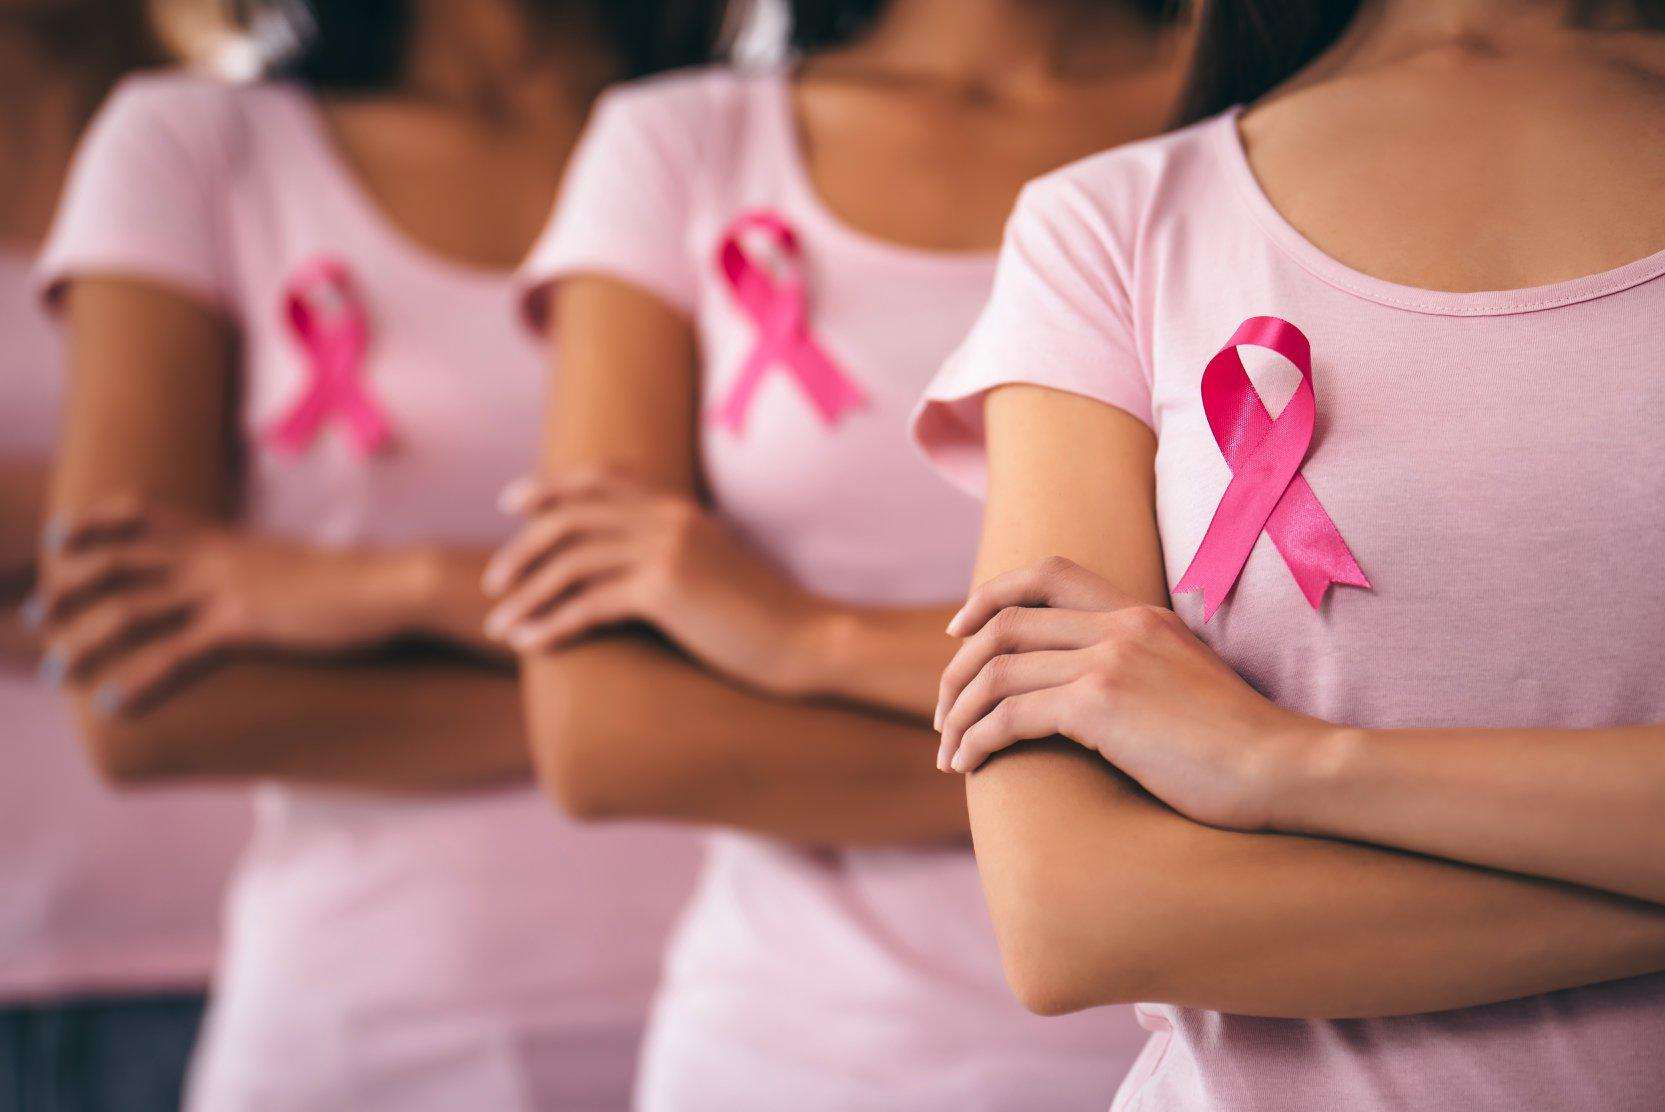 Half a million breast cancer deaths have been avoided